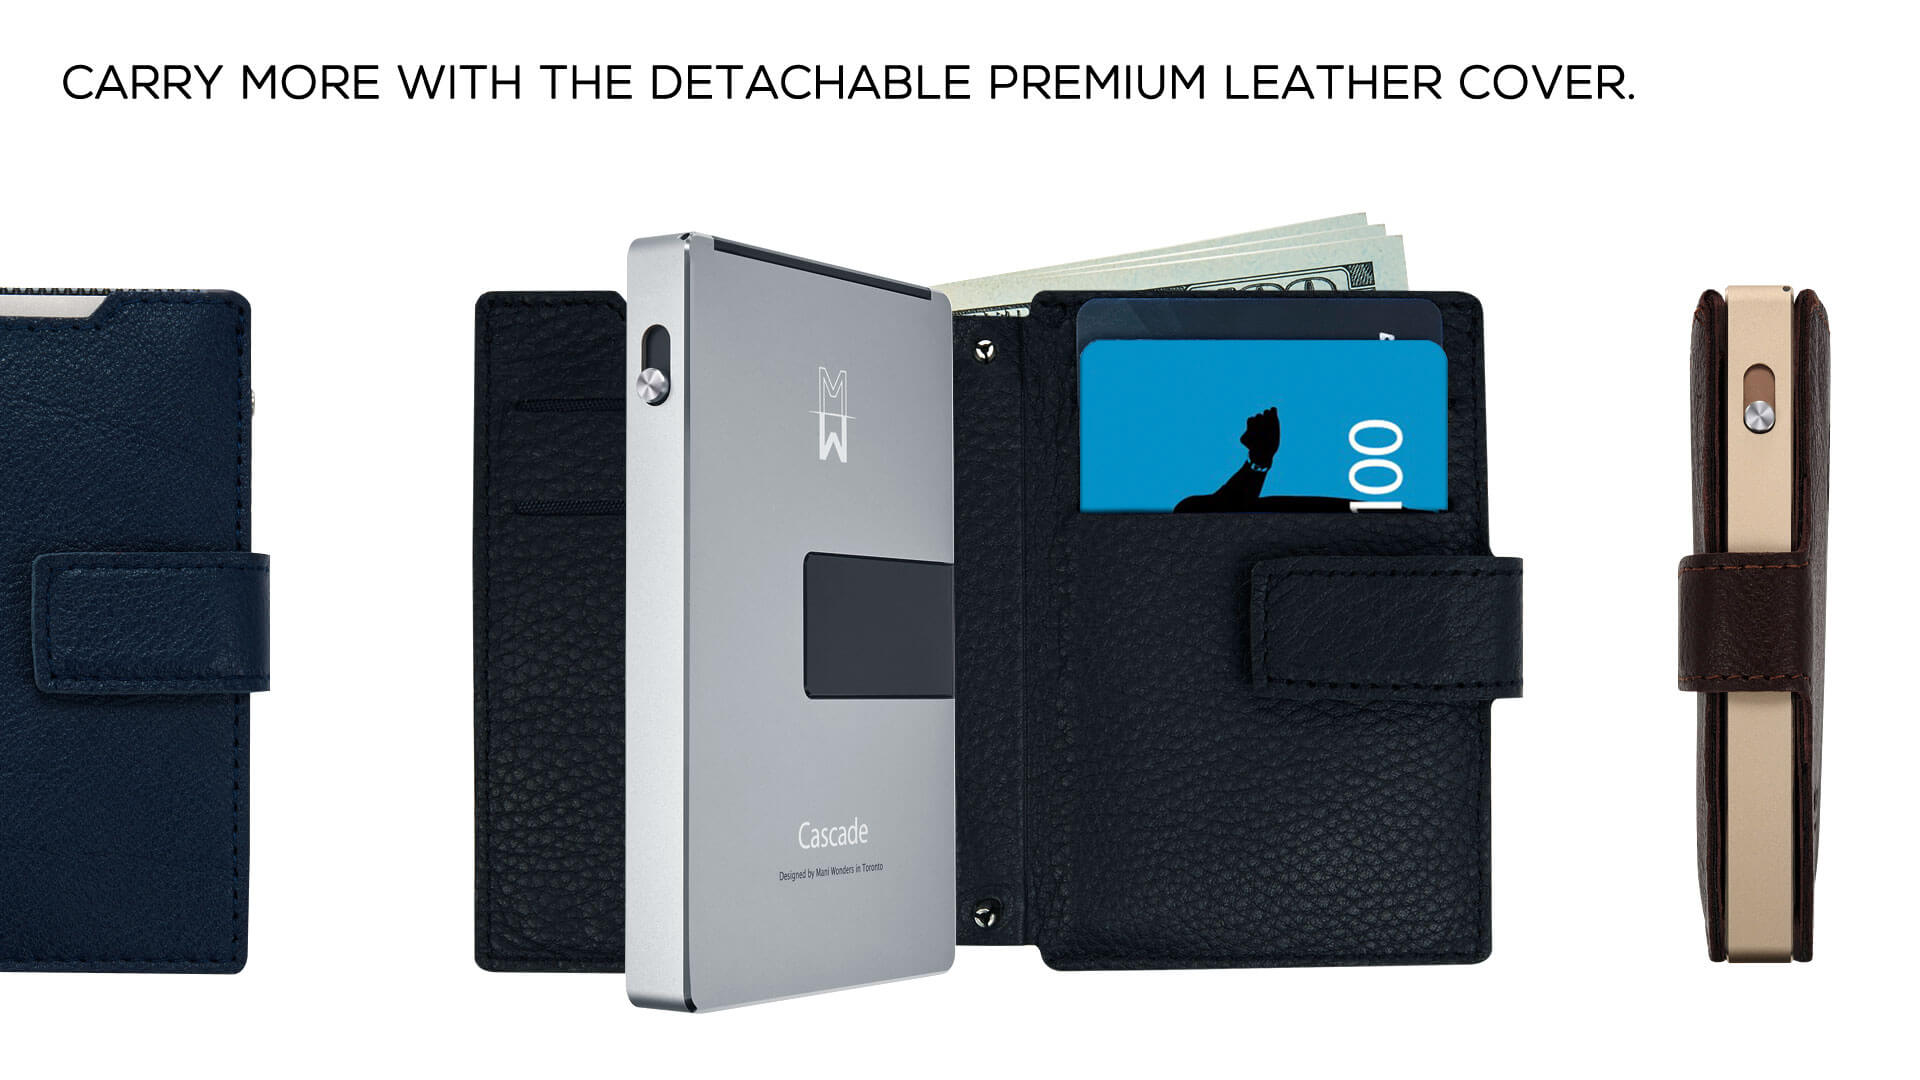 carry more with the detachable premium leather cover.